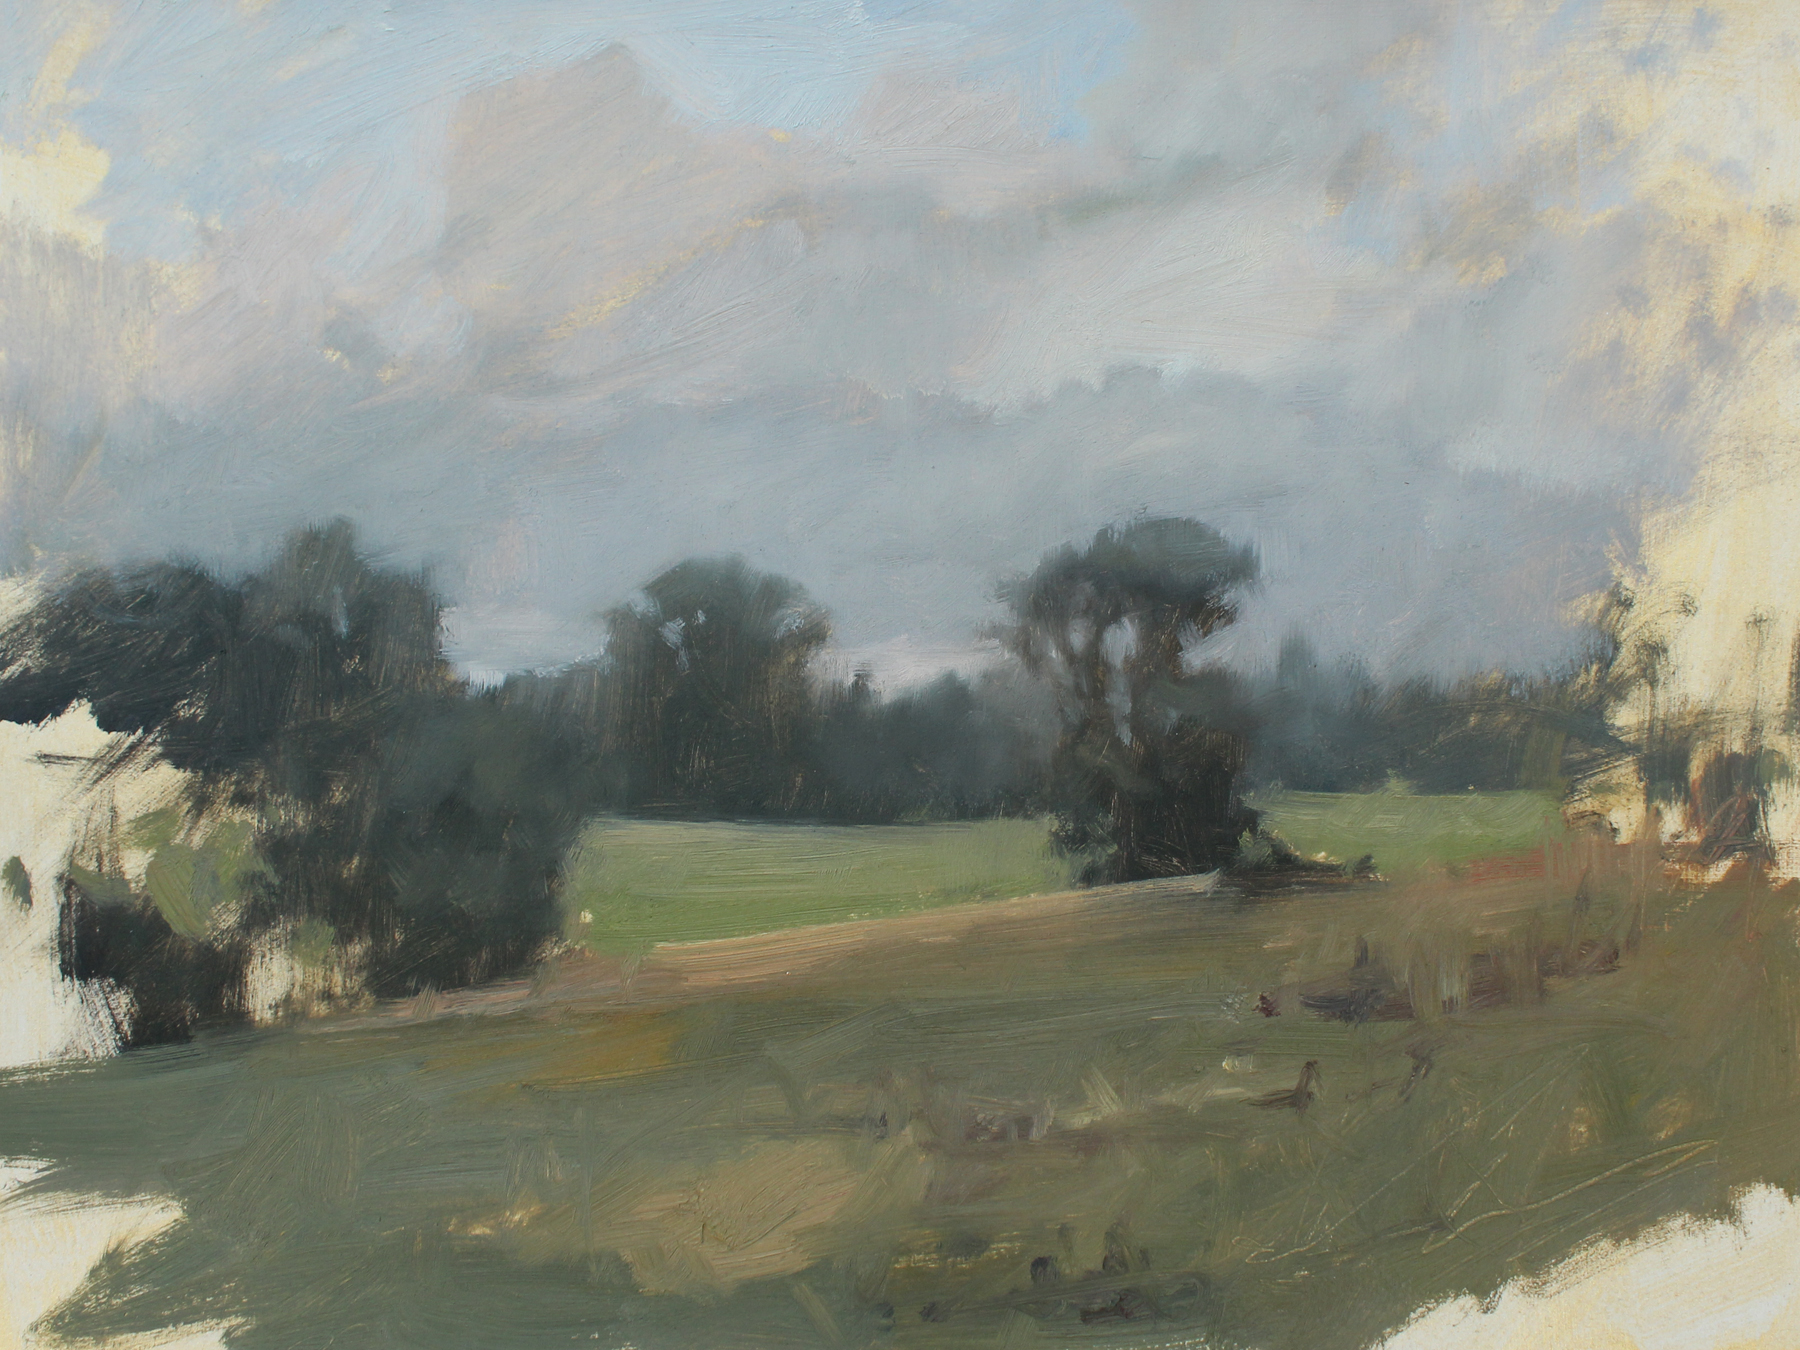 Happily Ever After Farm Field Study, oil on paper, 9 x 12 in